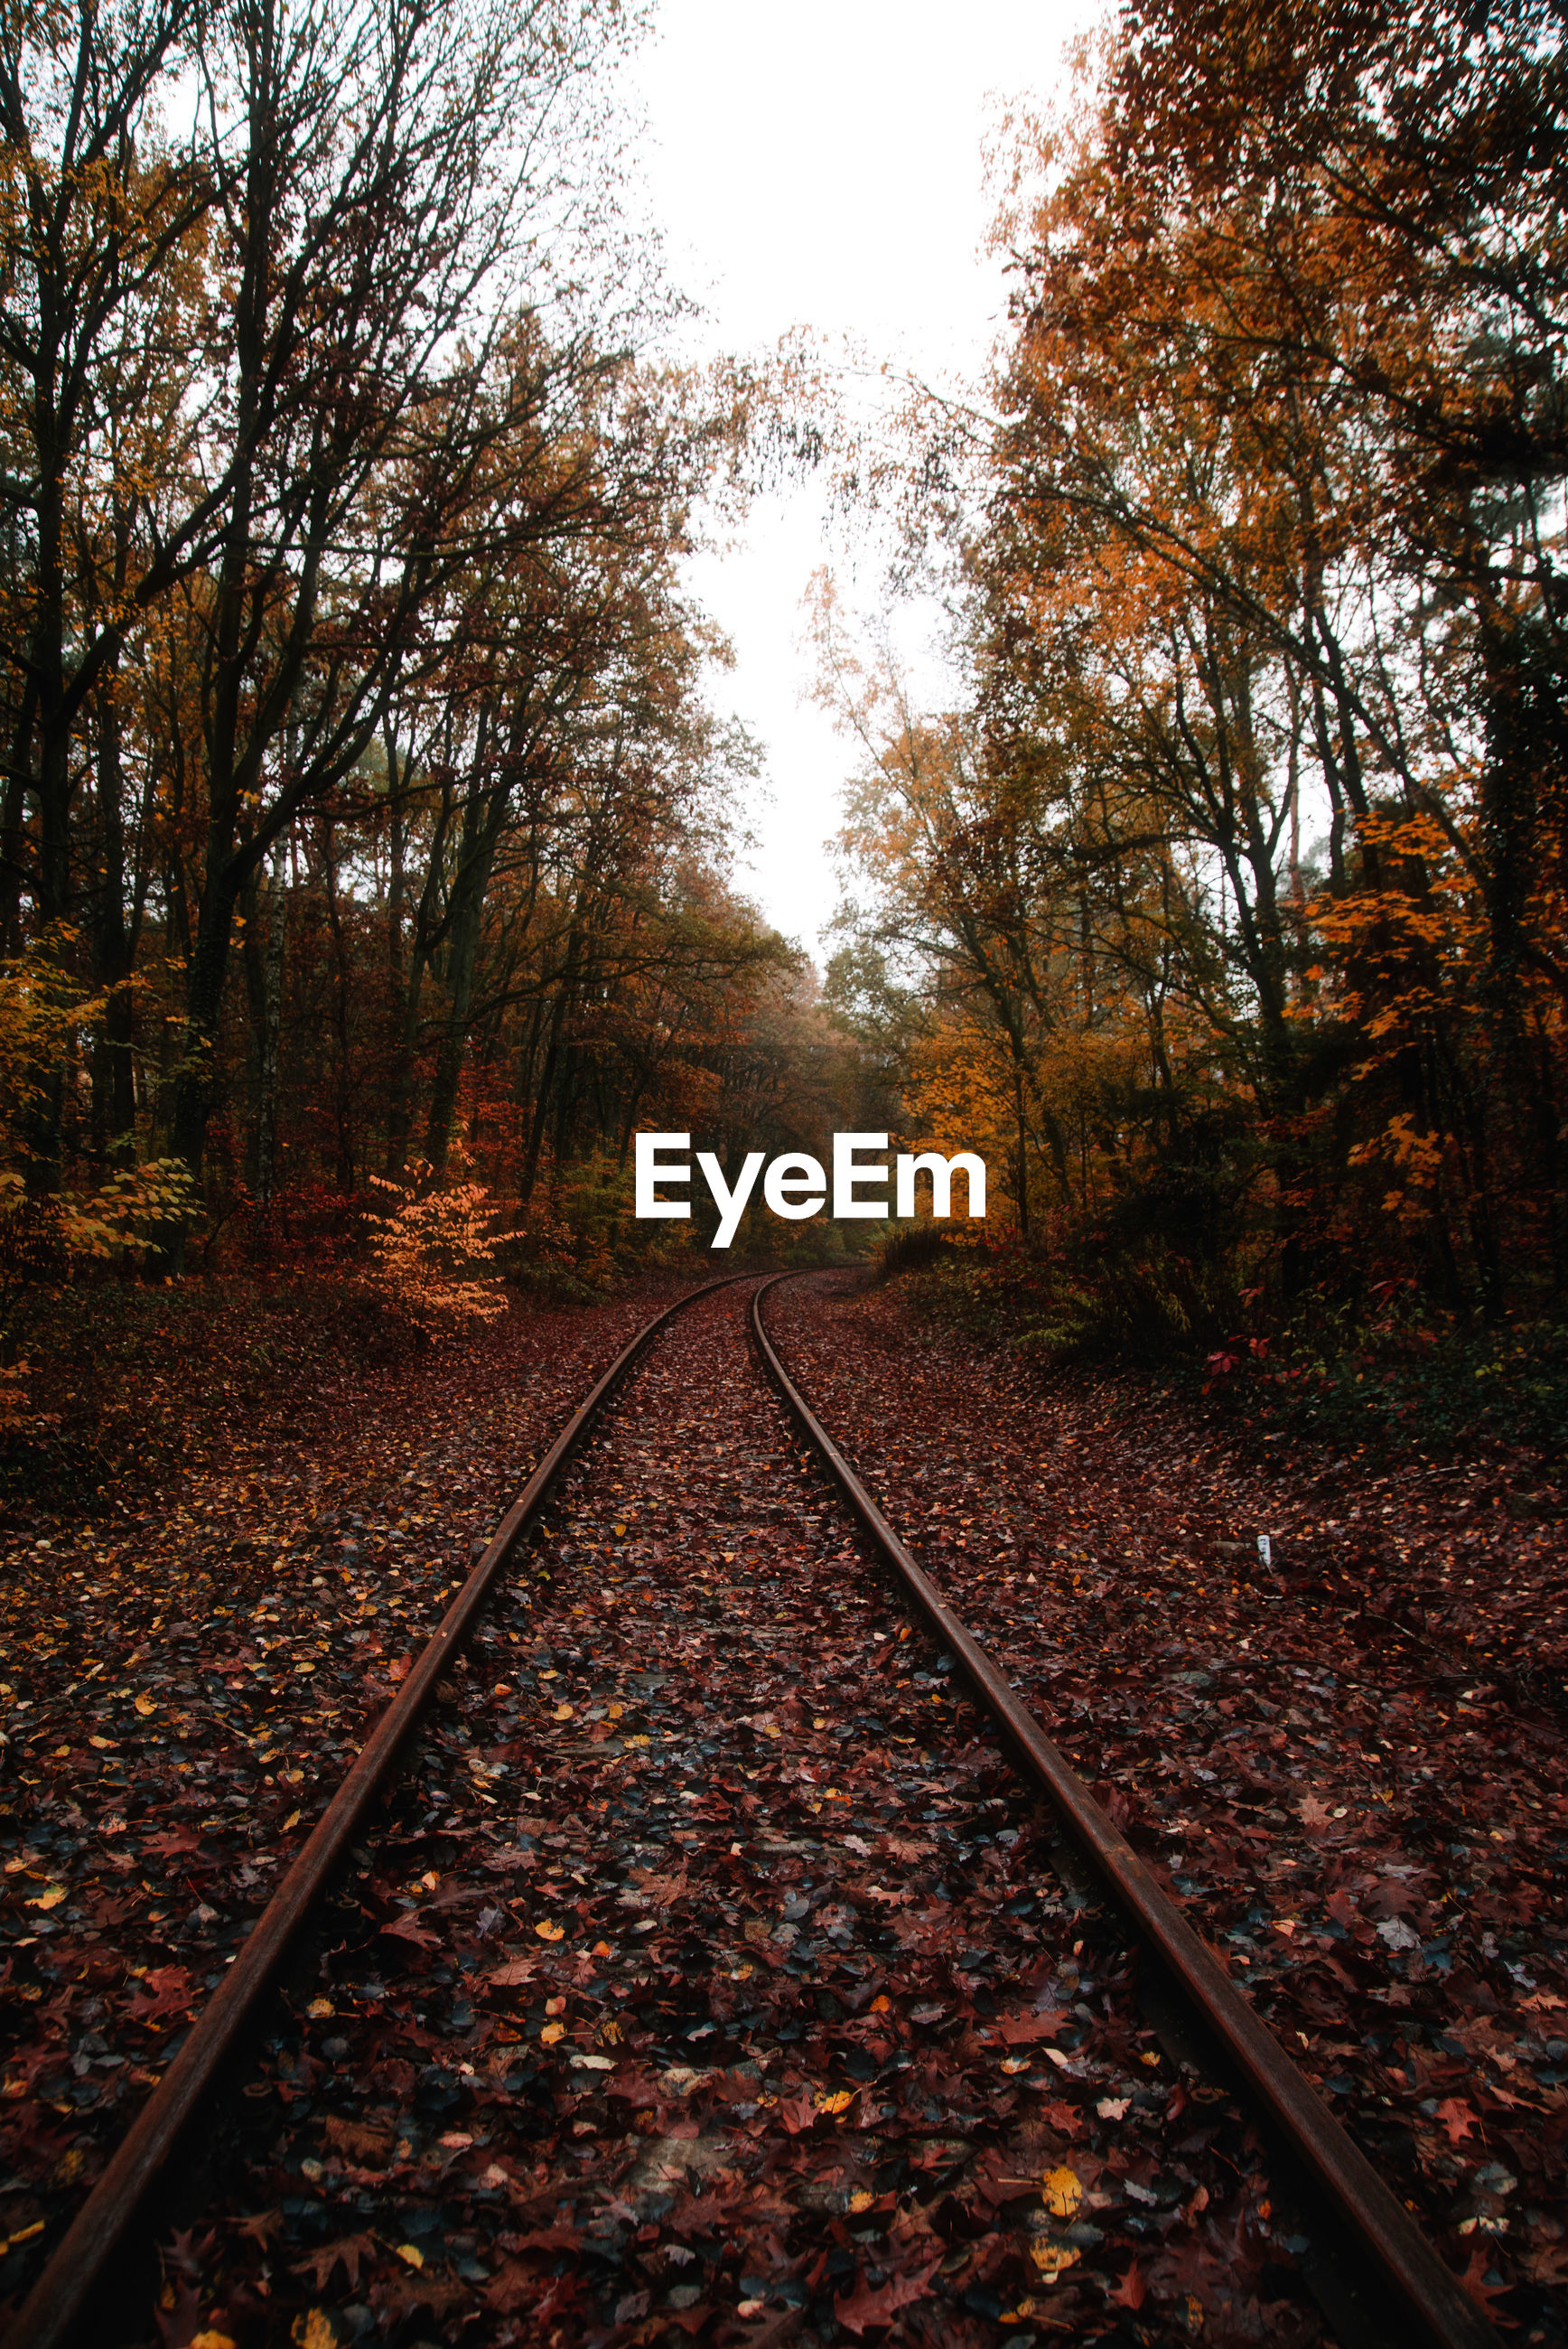 RAILROAD TRACK AMIDST TREES IN FOREST DURING AUTUMN